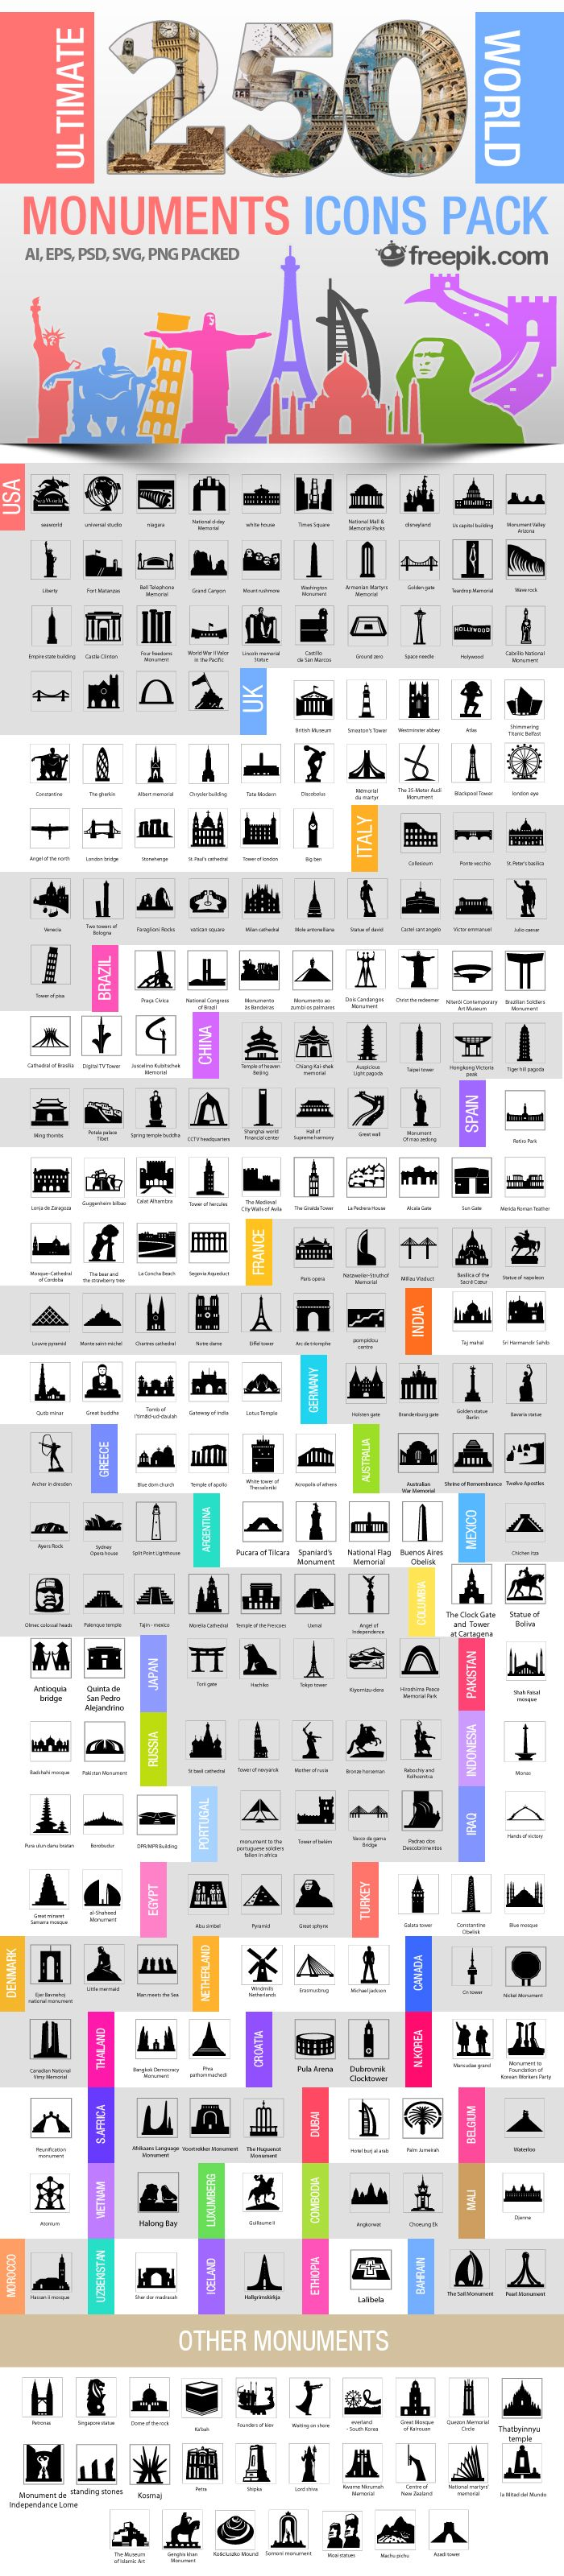 Exclusive Vector Freebie: 250 Ultimate World Monuments Icon